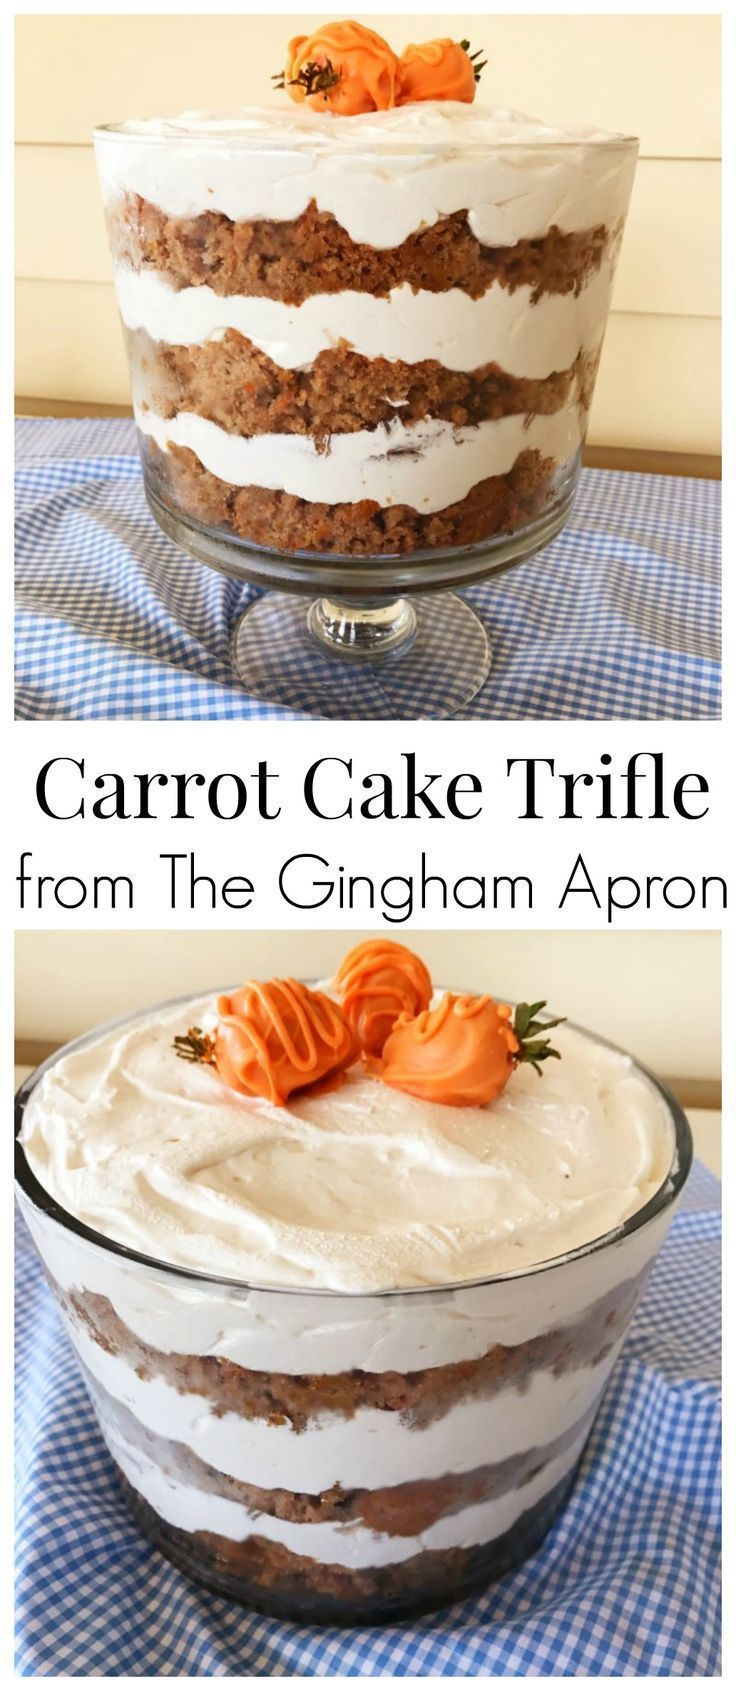 Carrot Cake Trifle | The Gingham Apron